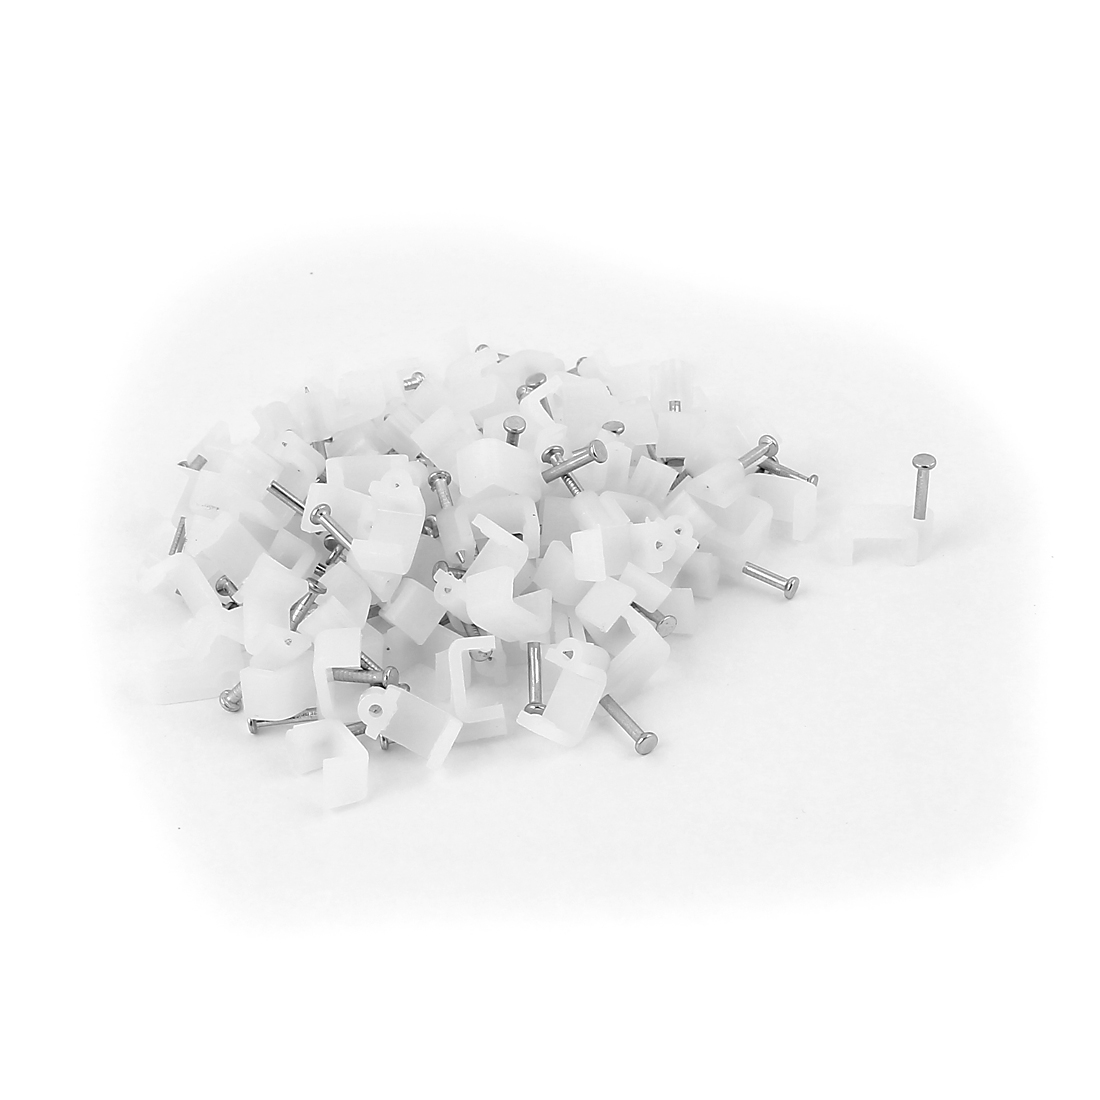 Cable Wire Clips Fastener 8mm Width w Fixing Nails 100Pcs White